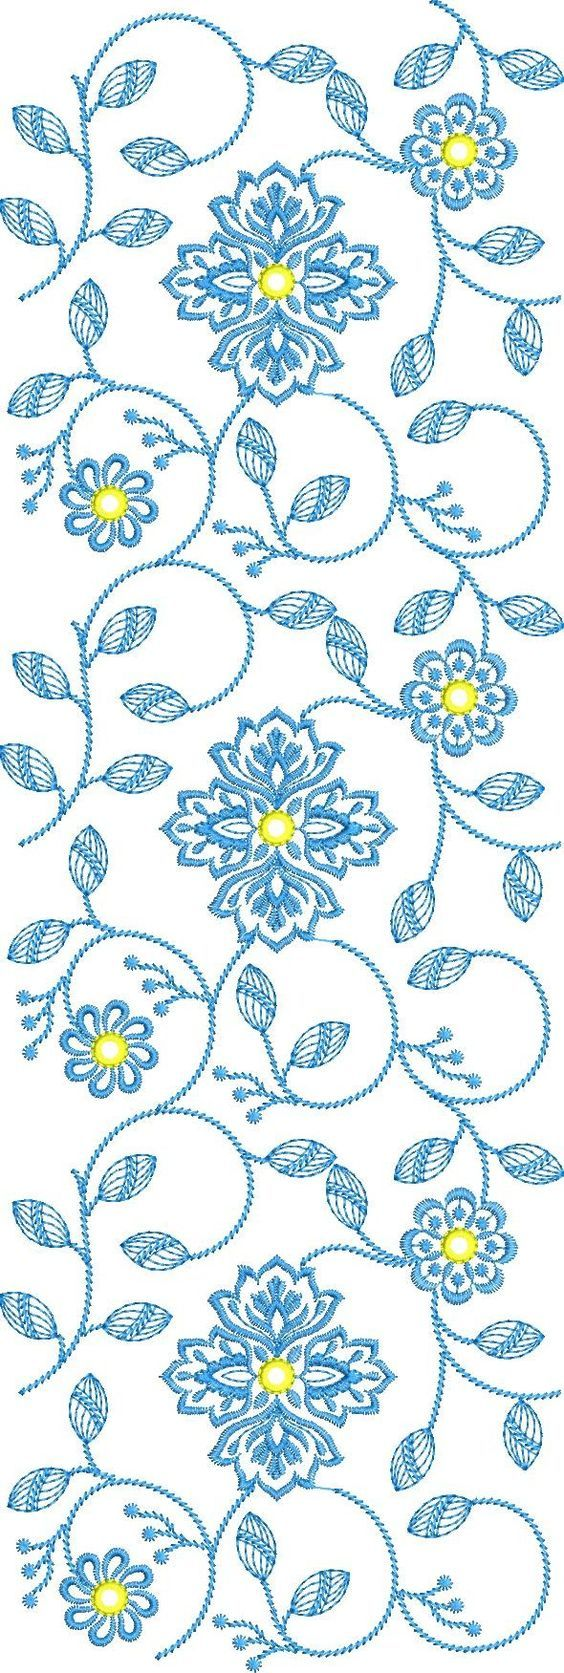 New all over free embroidery designs in machine embroidery